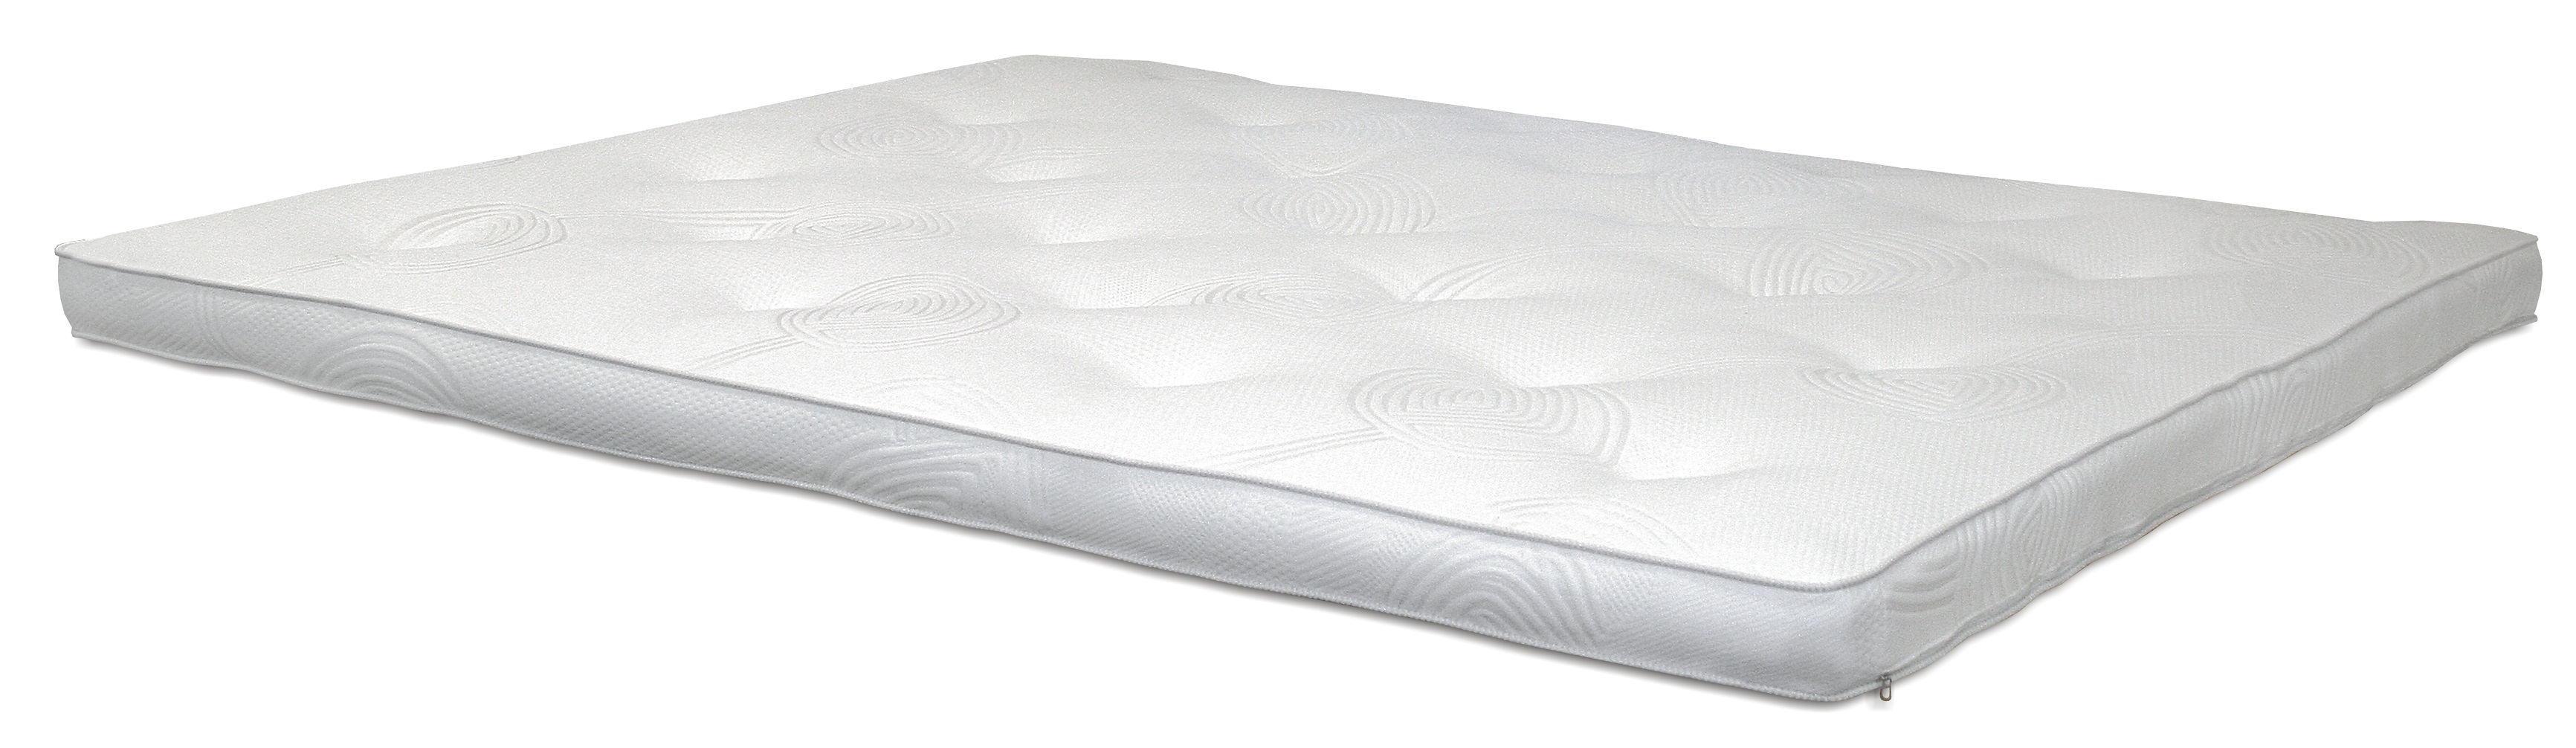 GRAND TOP mattress WHITE 1 15